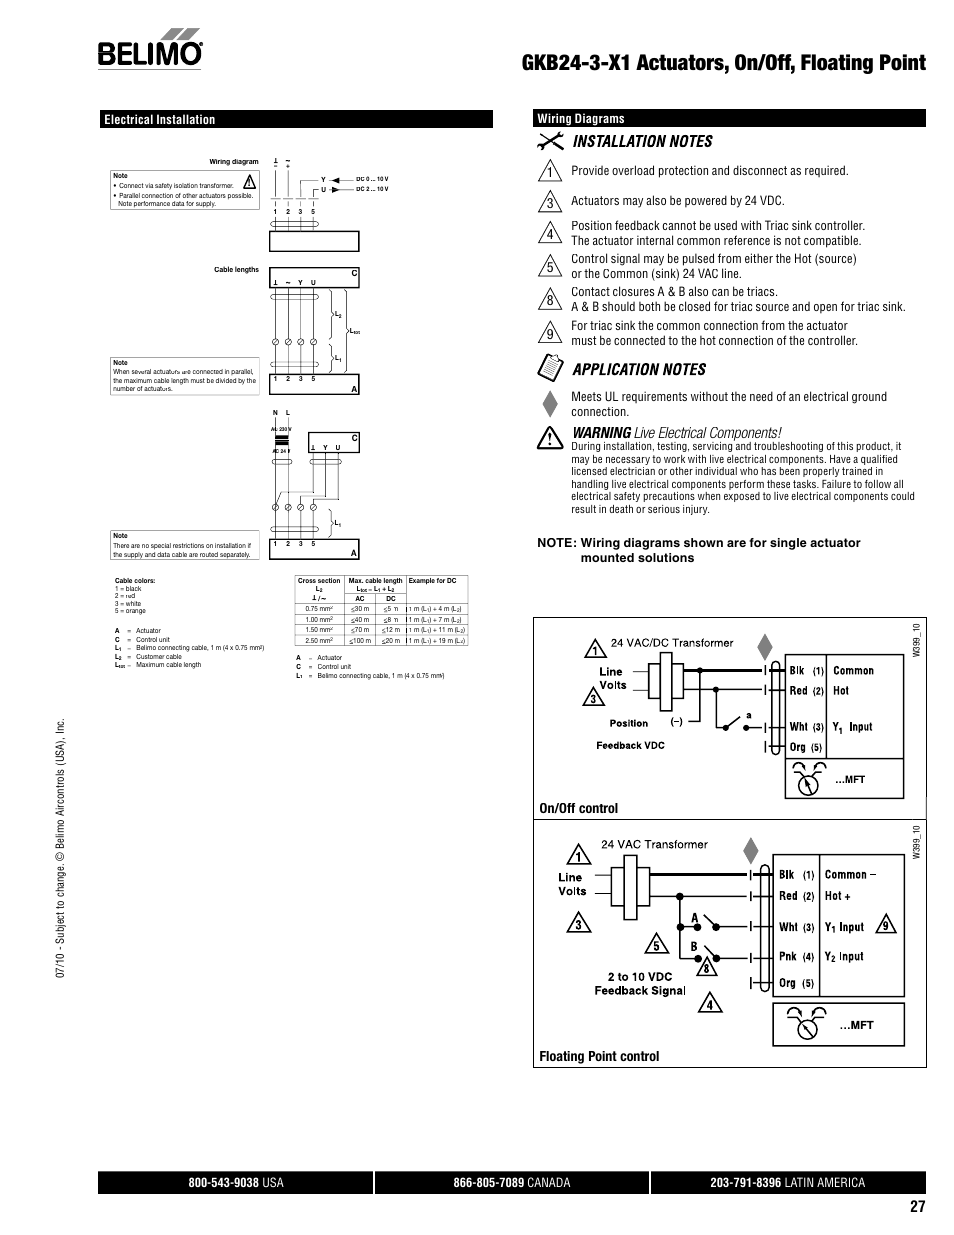 medium resolution of gkb24 3 x1 actuators on off floating point warning live electrical components g on off control off l aerco belimo f7 hd hdu series valve user